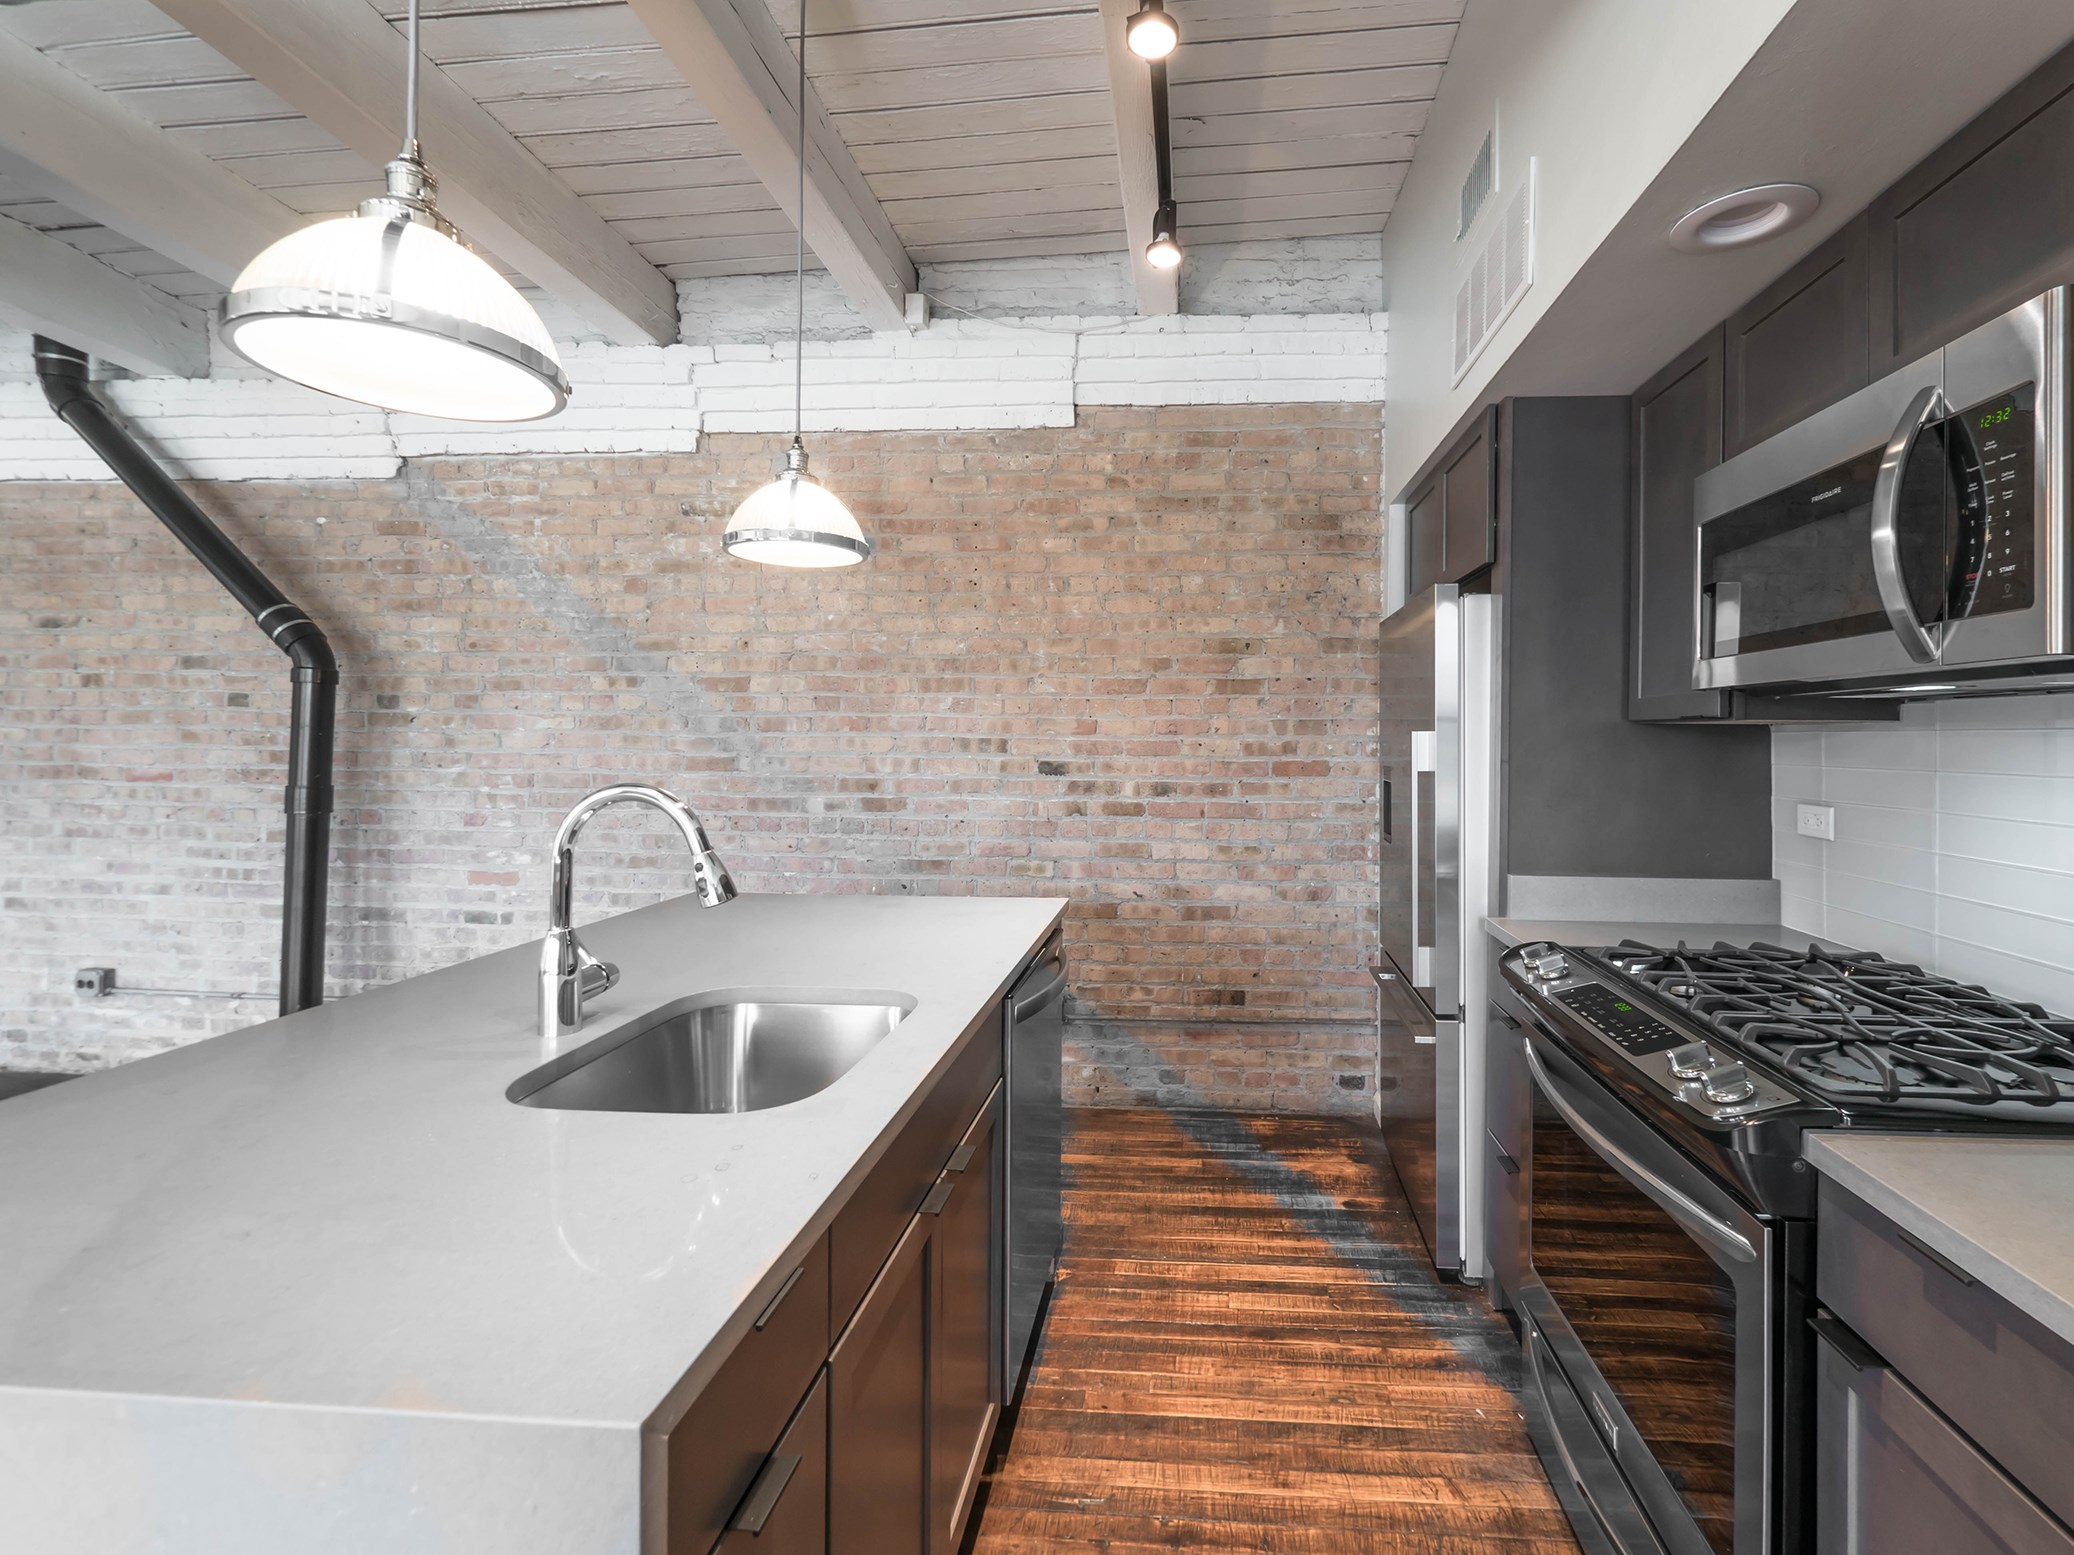 Renovated Kitchens at 1012 W. Randolph St. Chicago, IL 60607